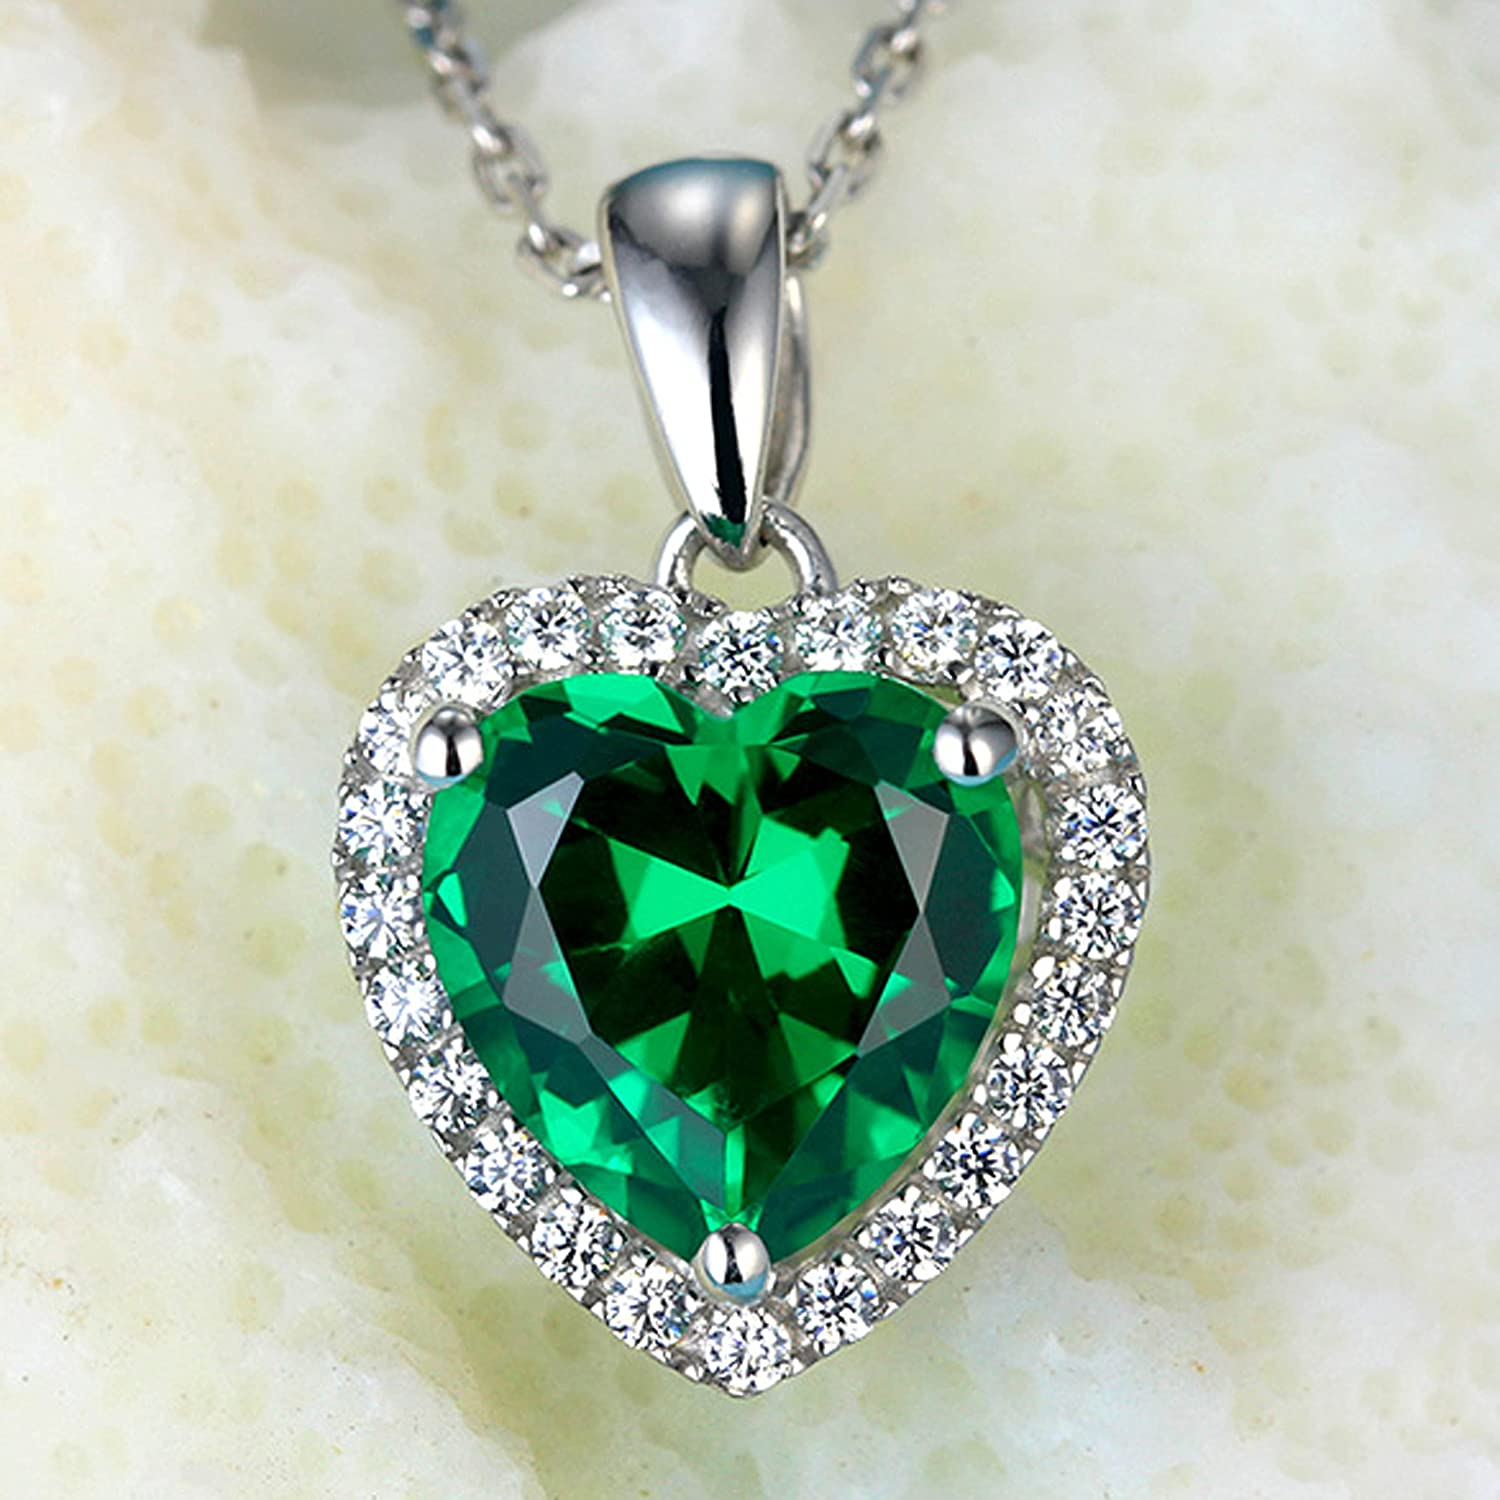 Navachi 925 Sterling Silver 18k White Gold Plated Heart 3.7ct Ruby or Emerald Necklace Pendant 16 flLhHNfb